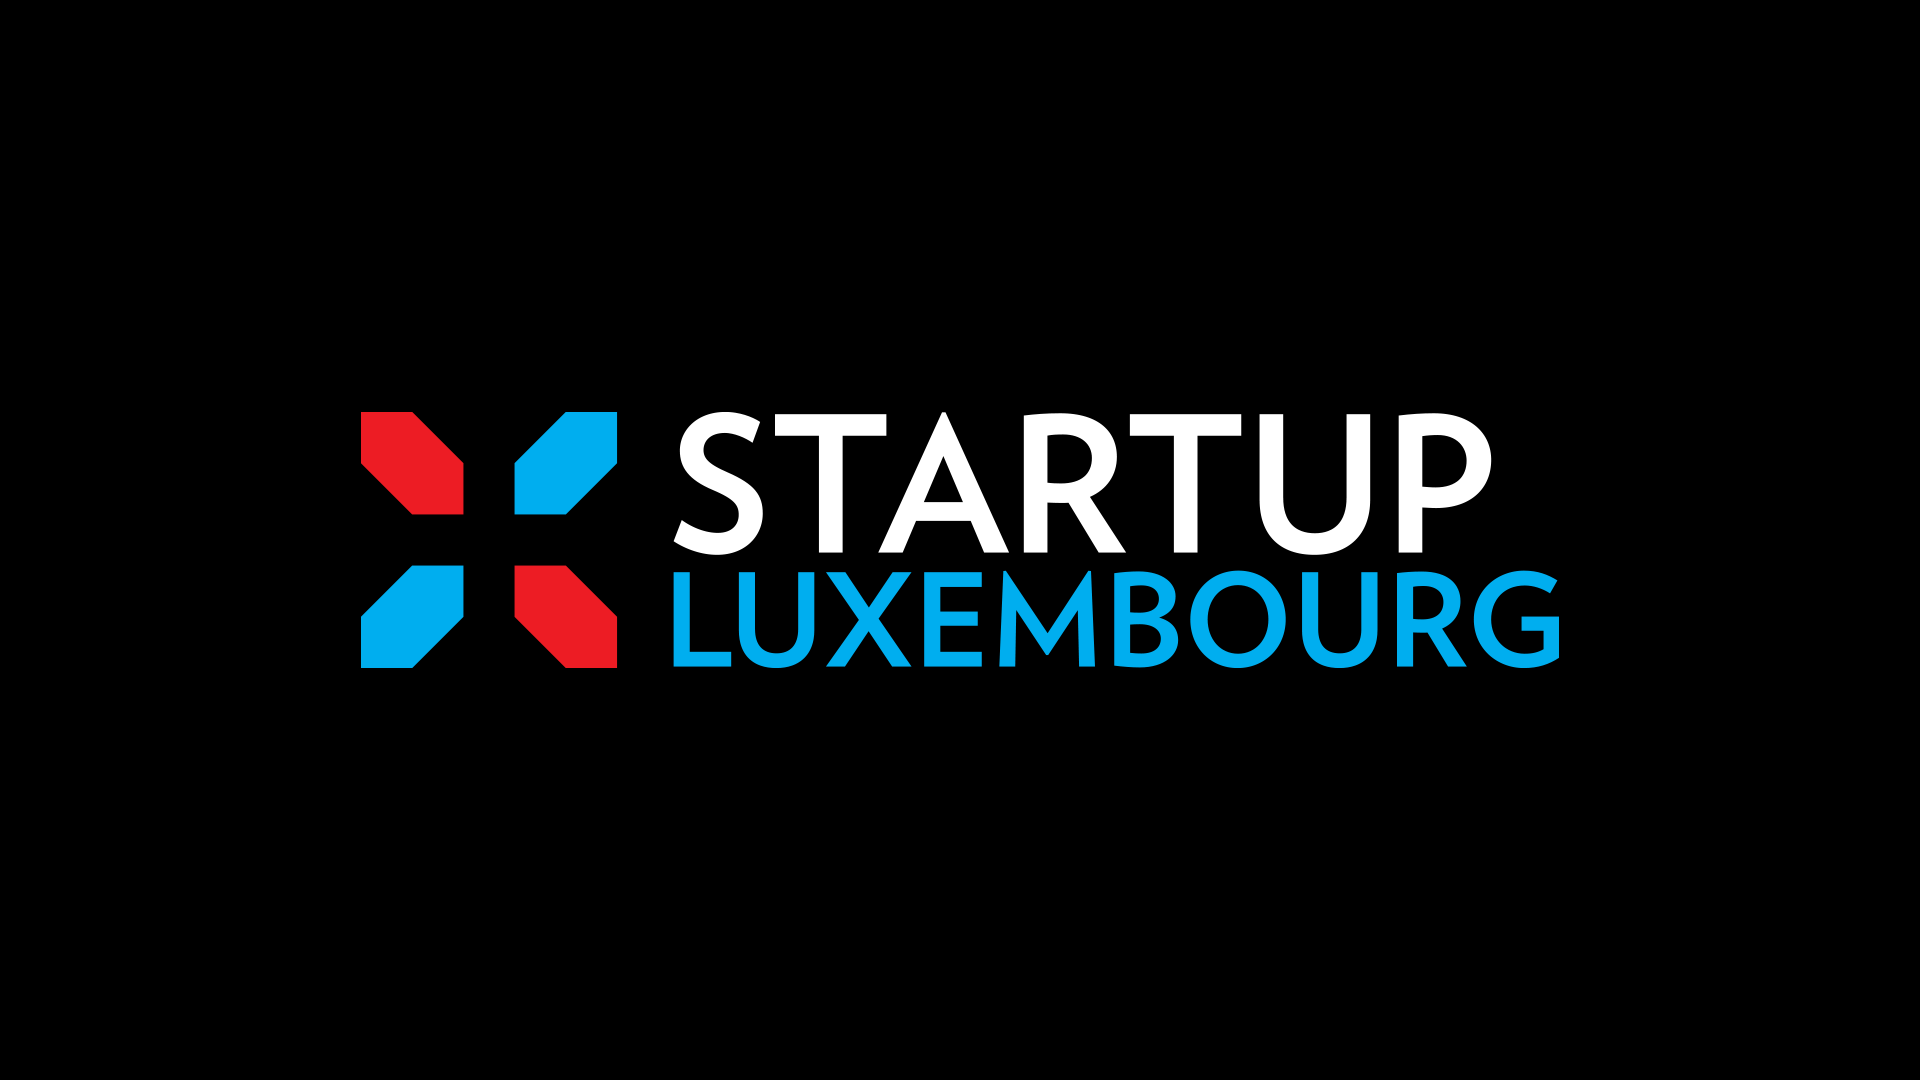 Startup Luxembourg-1